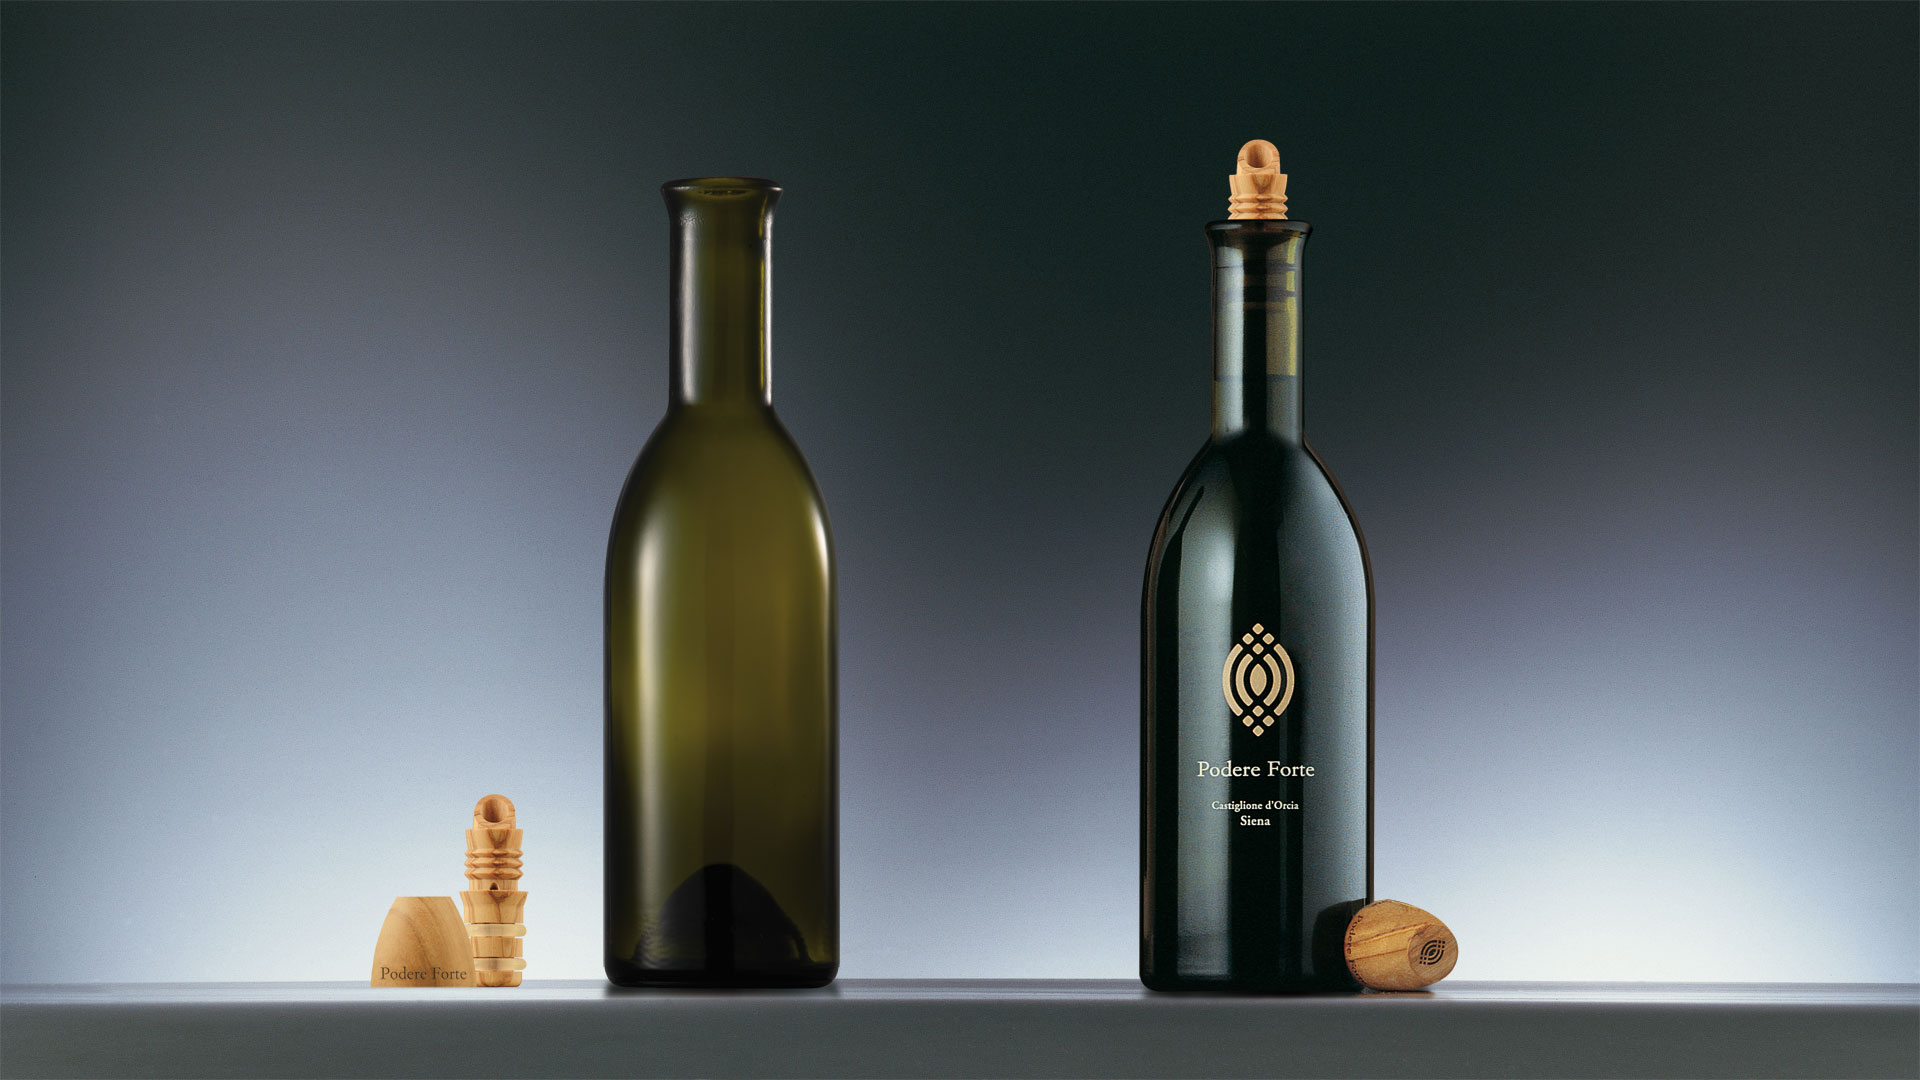 Podere Forte Olio bottle design